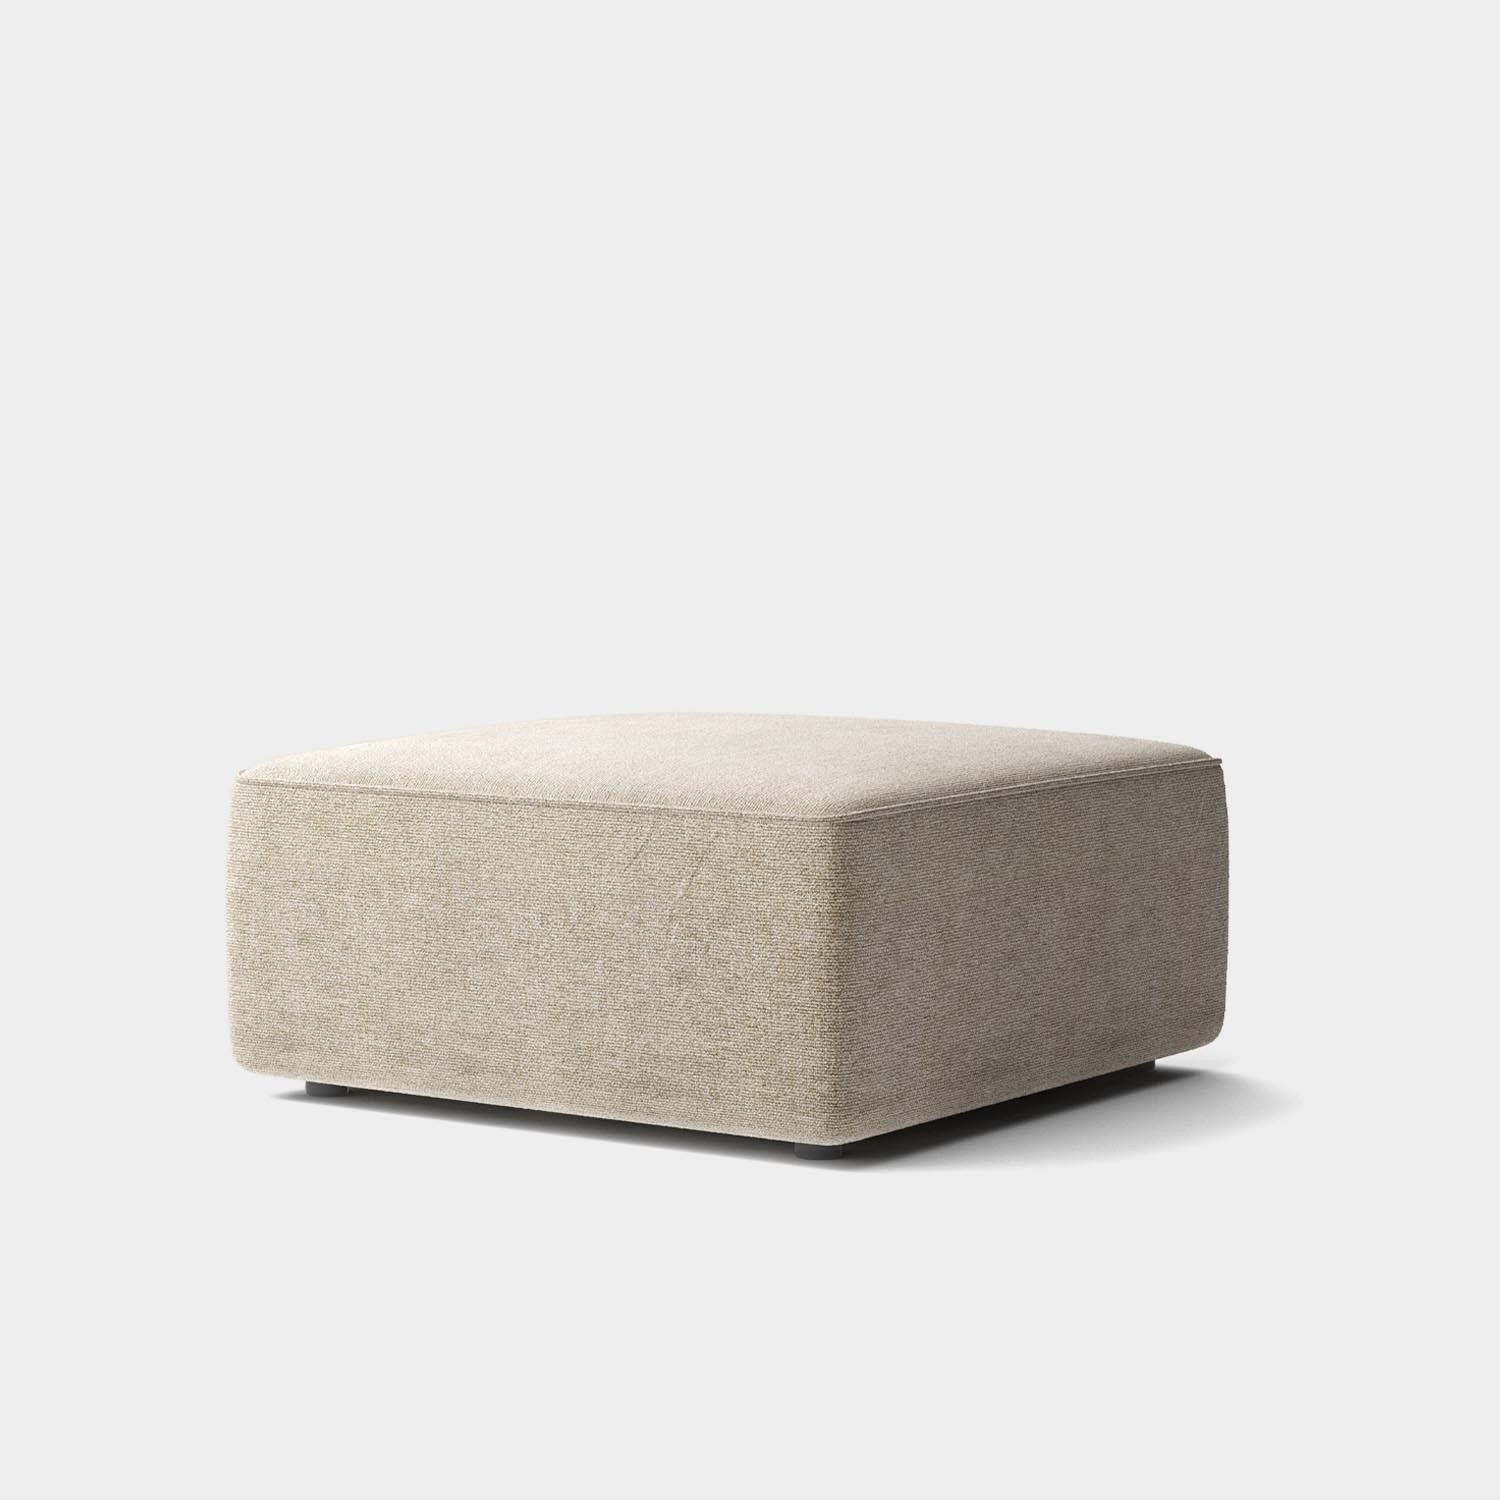 "Eave Modular Sofa 34"", Pouf Module 34"", Category 2 Fabric, Made to Order"